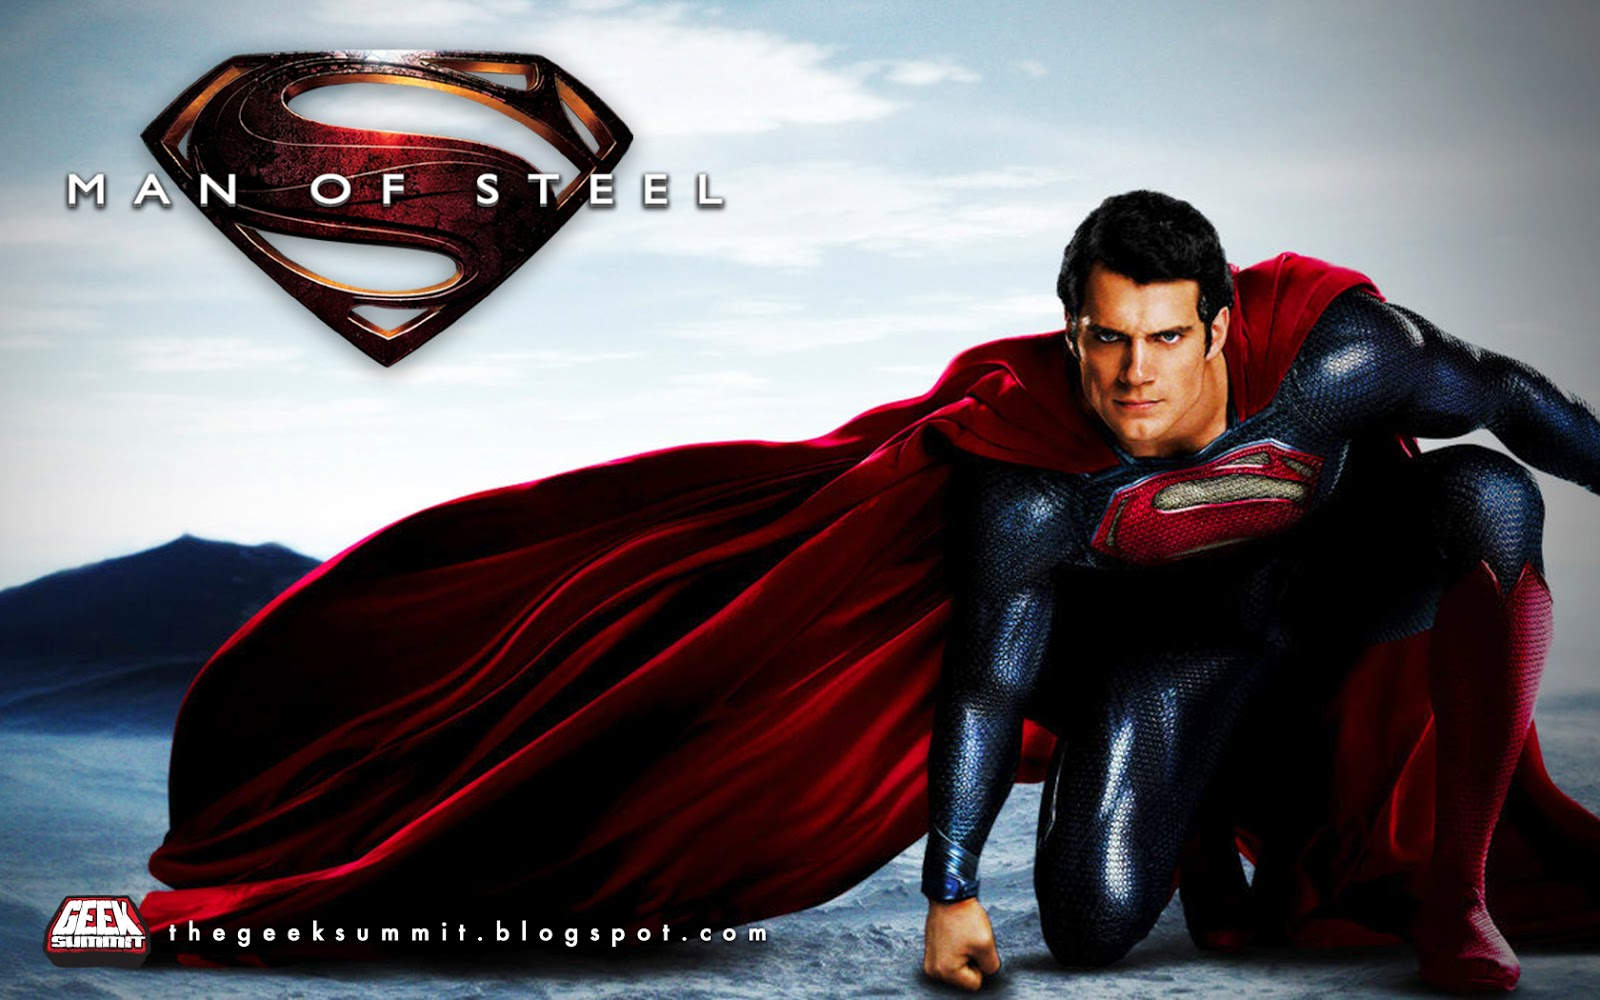 man of steel henry cavill wallpapers - Henry Cavill on photos from Superman Man of Steel